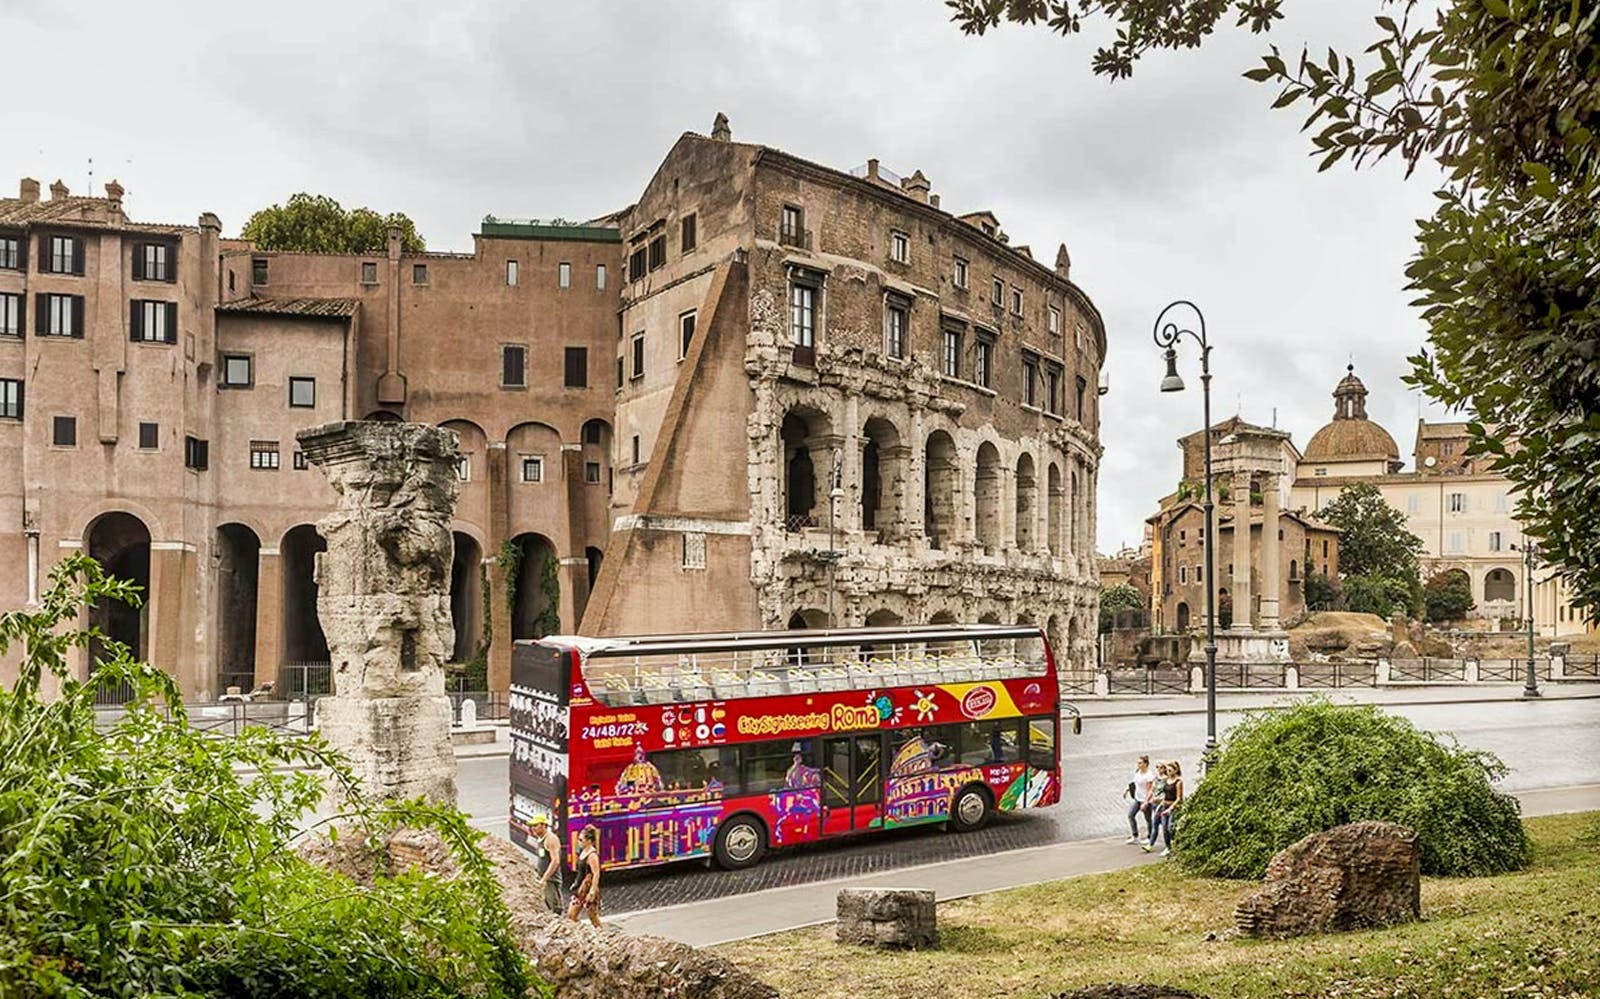 Hop-on Hop-off Bus Tour + Skip The Line Colosseum Tickets